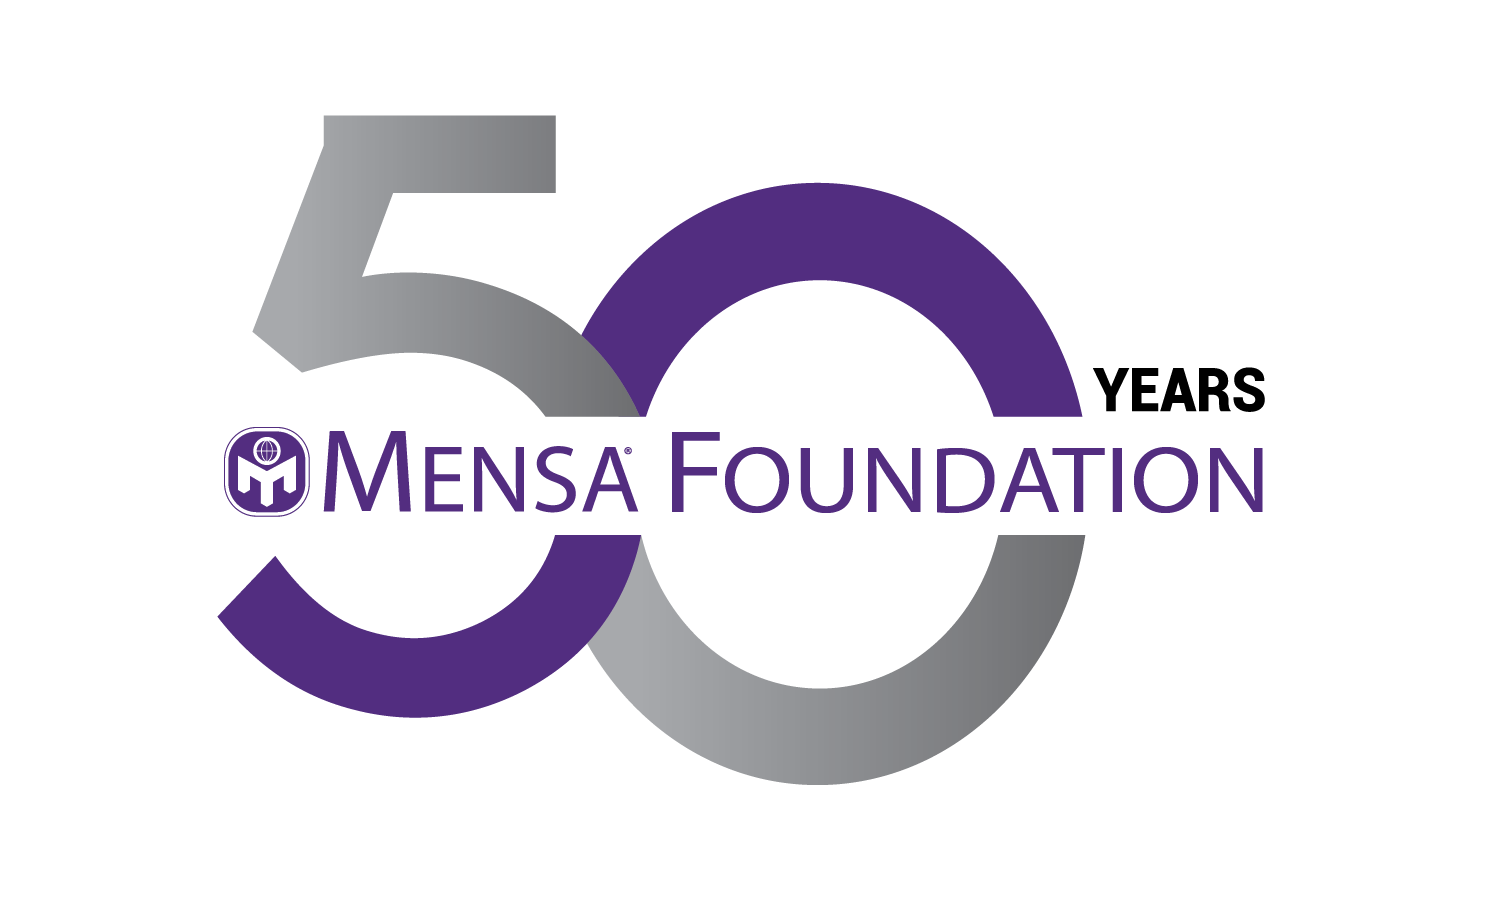 The Mensa Foundation's 50th anniversary logo.